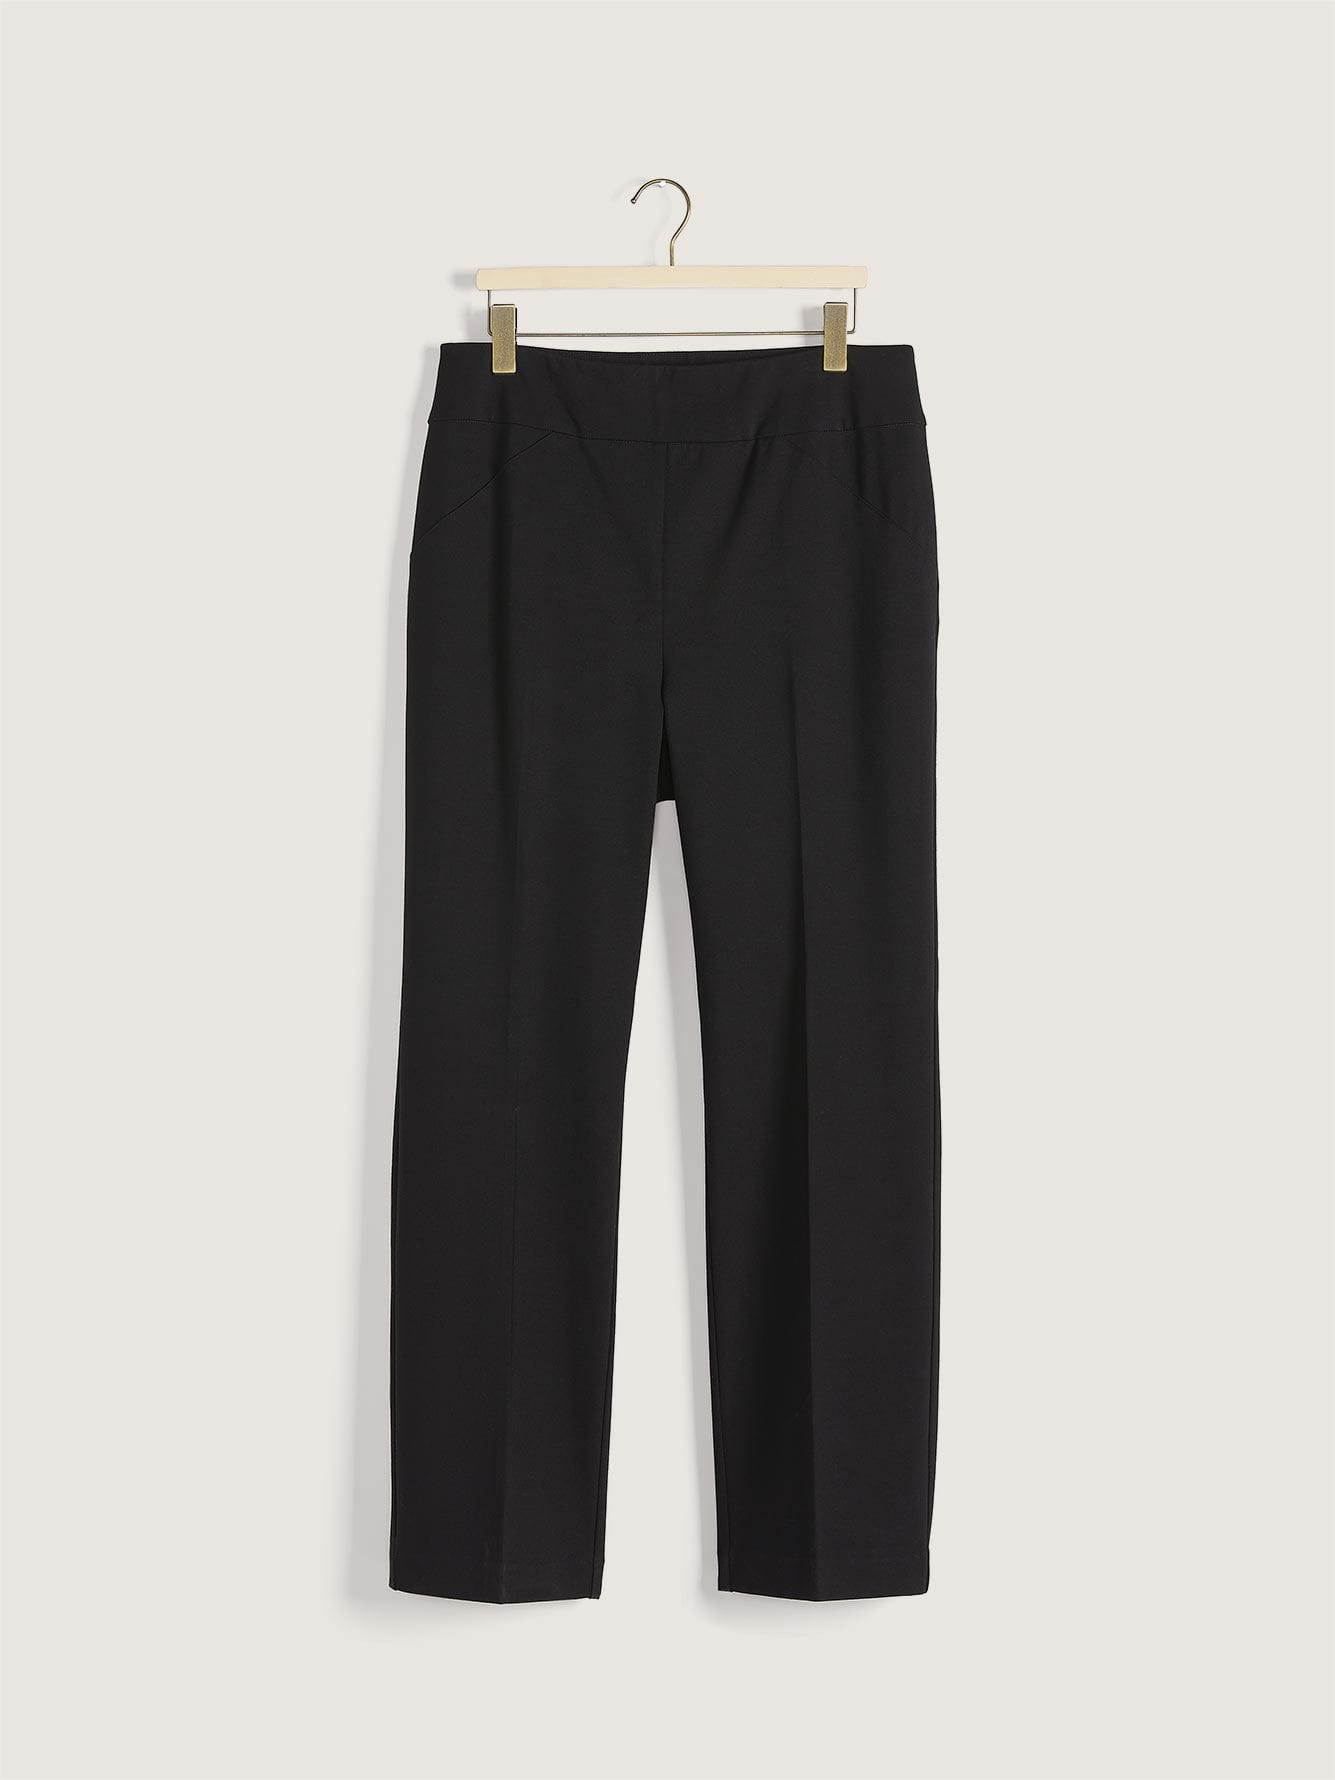 Ponte de Roma Sculpting Pant - In Every Story